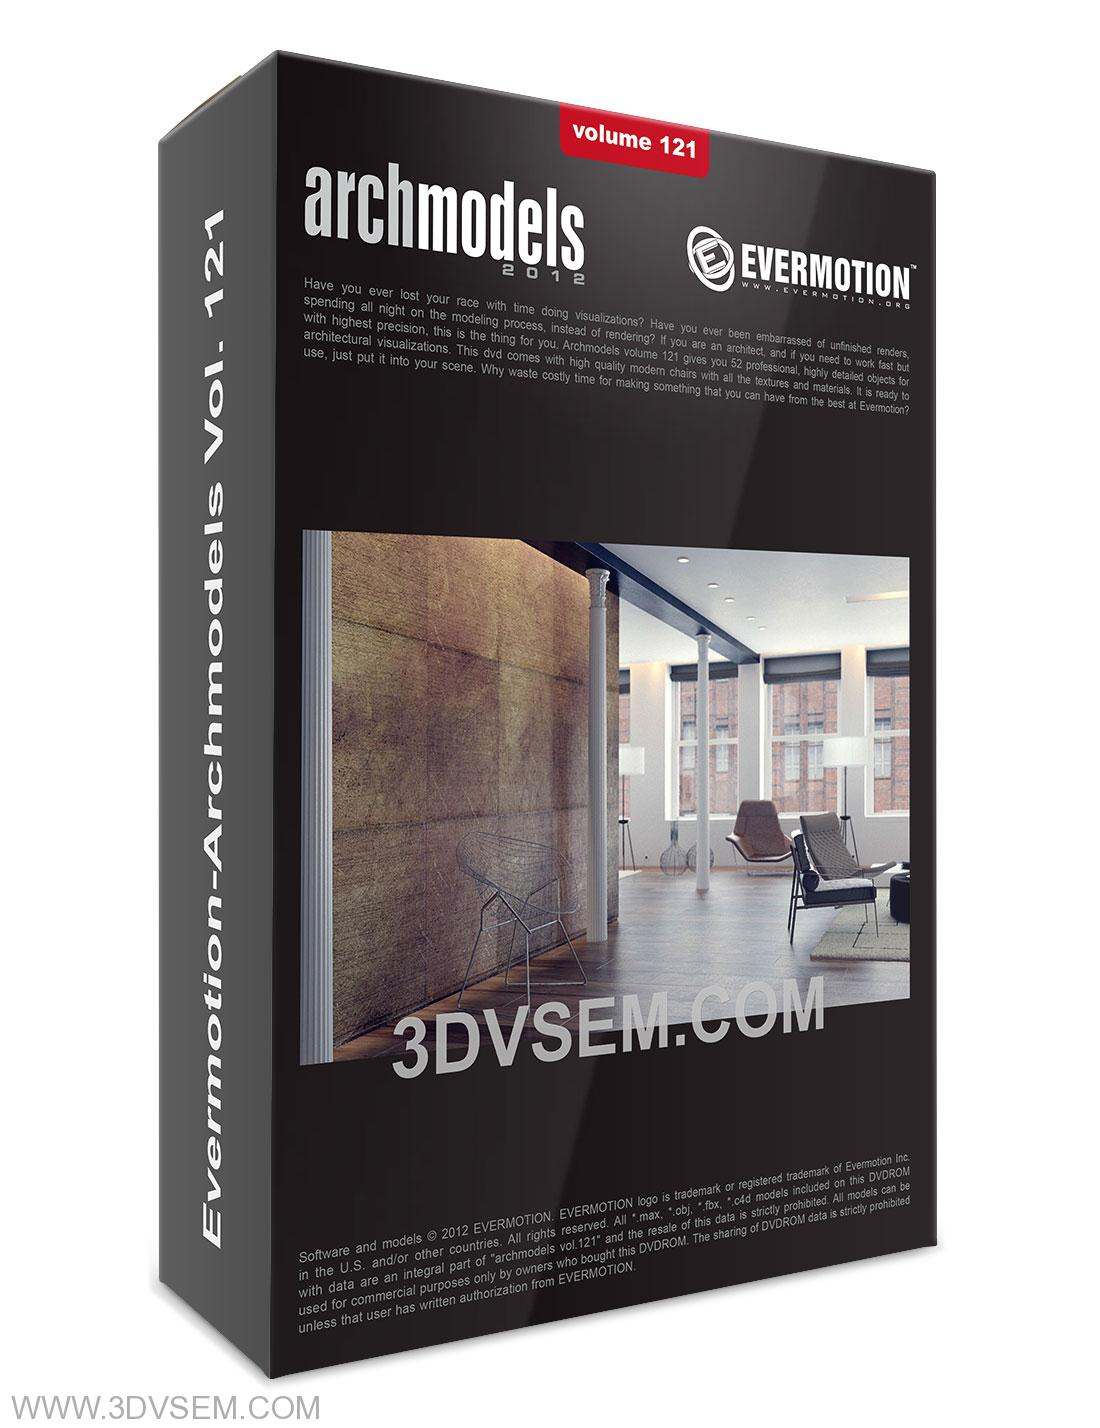 Evermotion-Archmodels Vol. 121